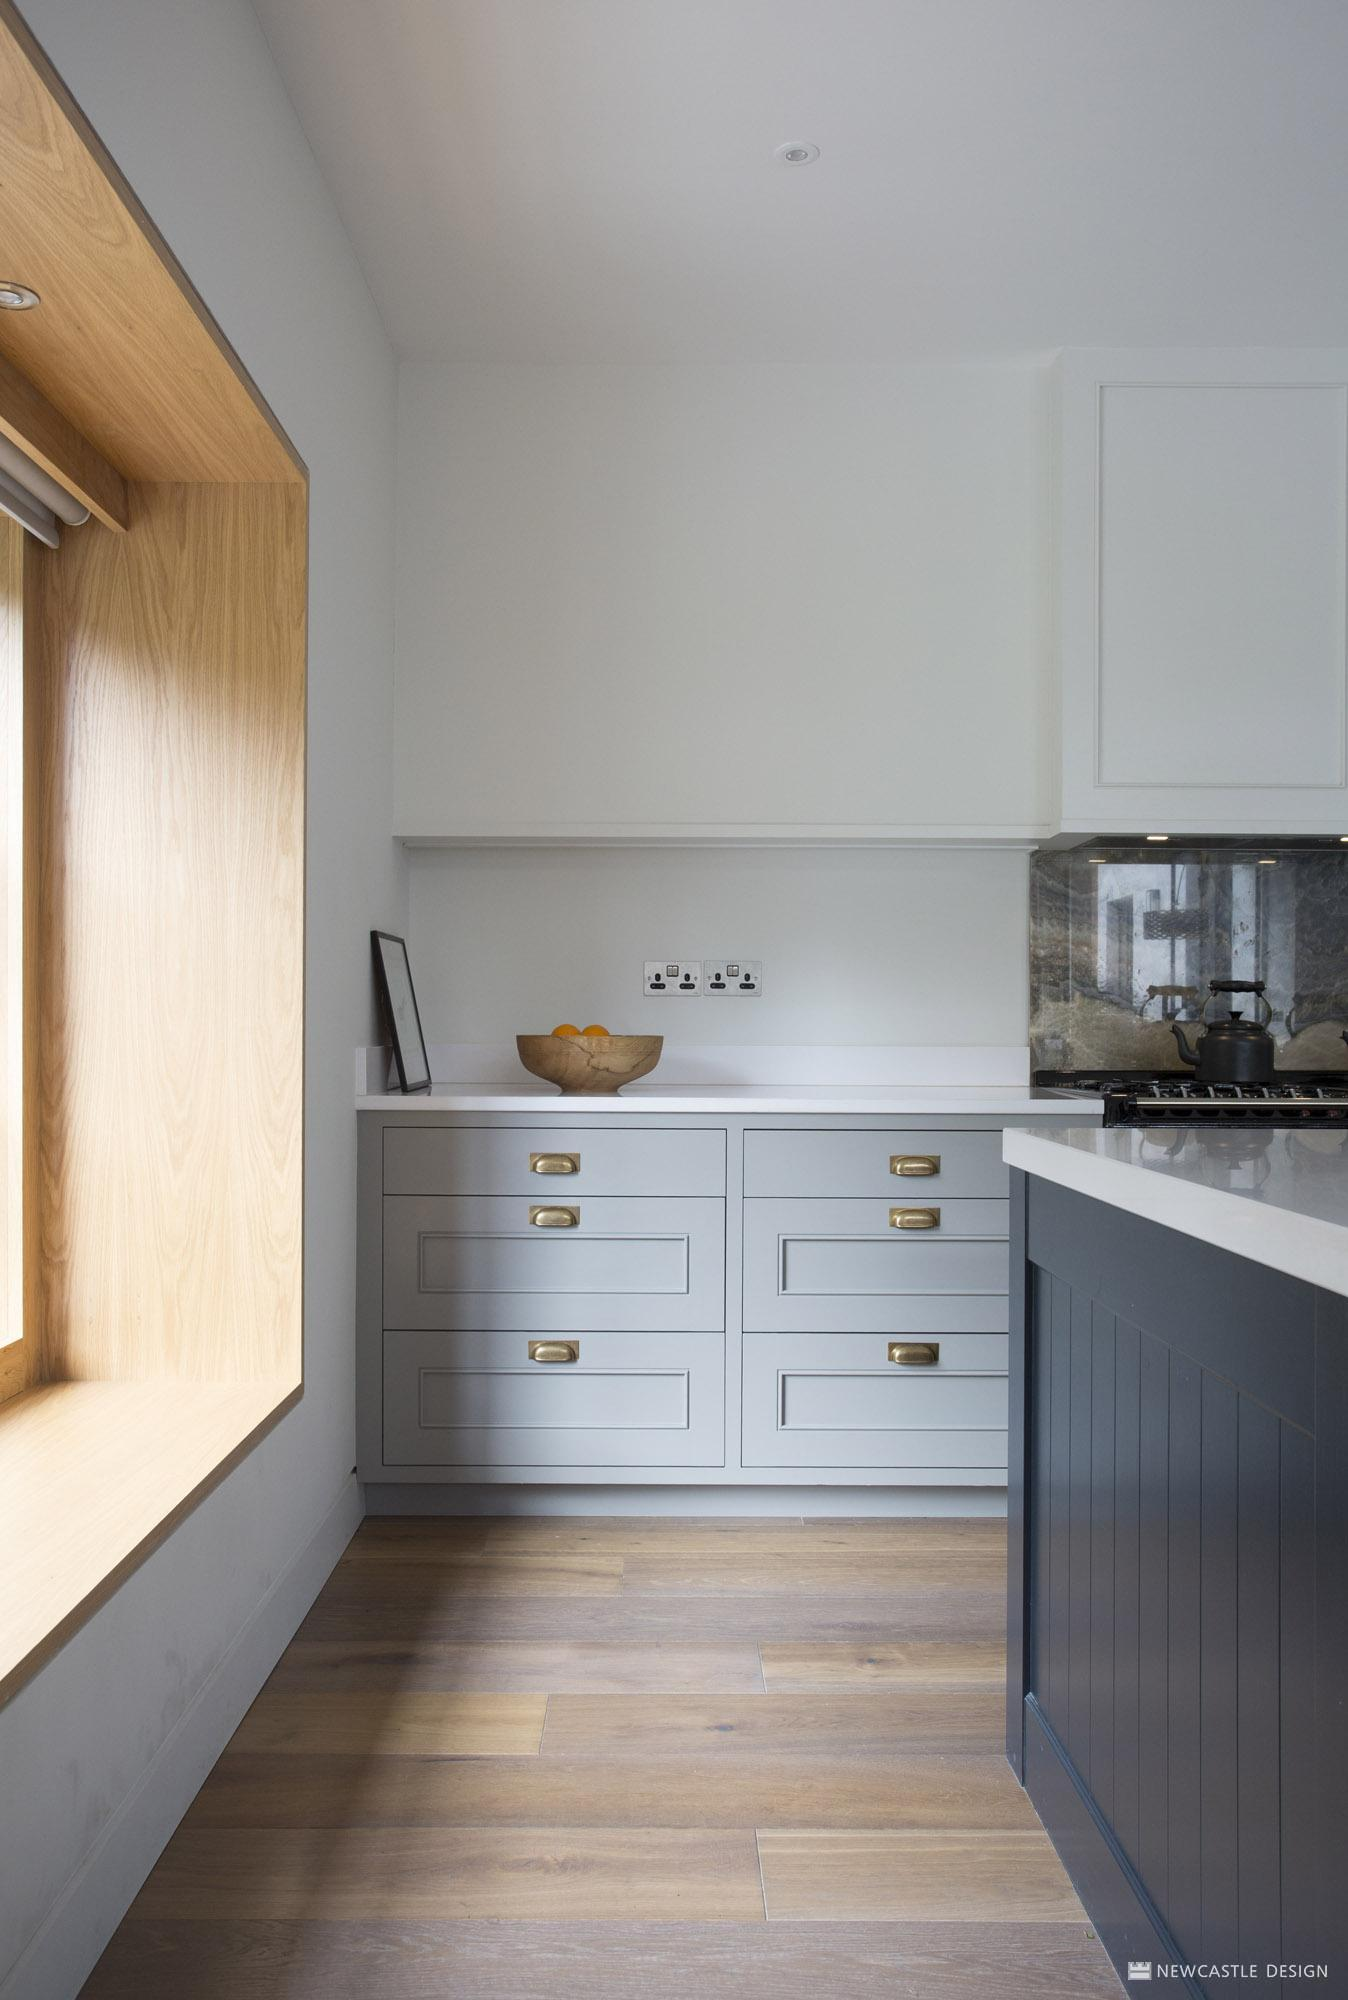 The Marylebone Kitchen - Newcastle Design